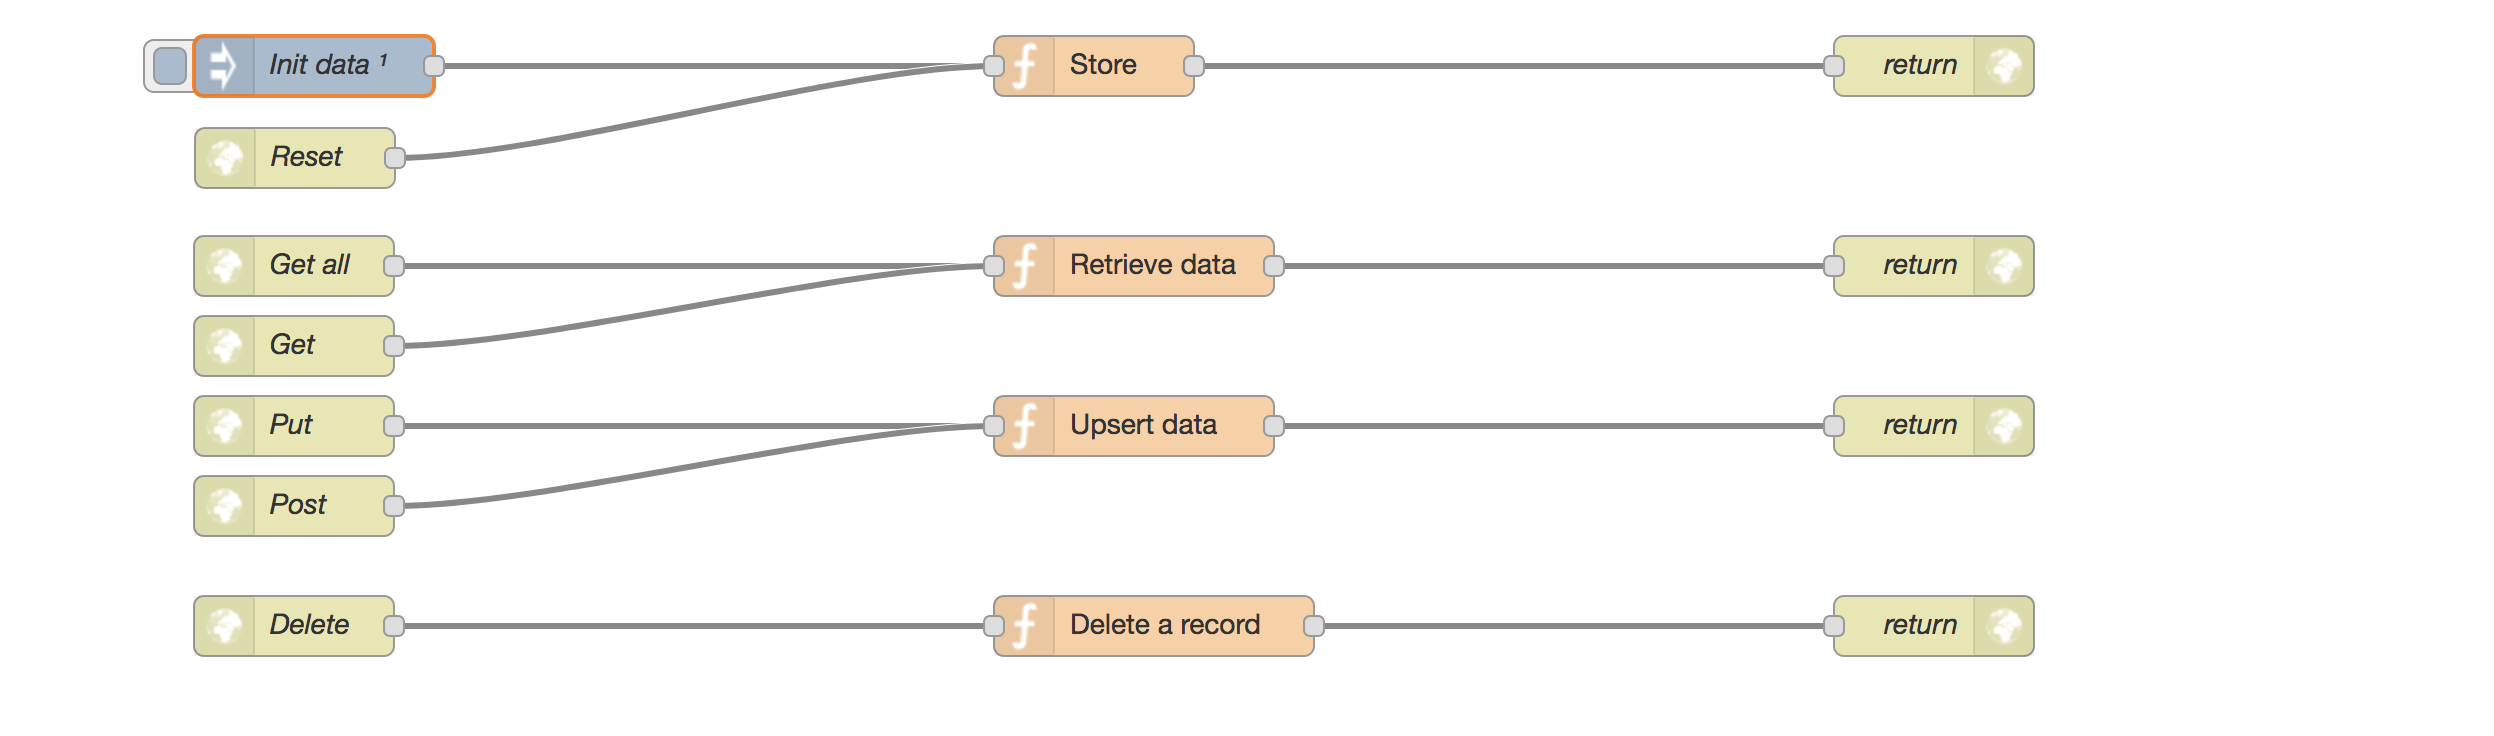 Node Red Development And Ci Tim Vierbergen Ordina Jworks Tech Blog Lets Look At The Other Type Of Circuit A Parallel Configuration To Overcome This We Are Using An Http Input Trigger Reset Our Data Take Implementation